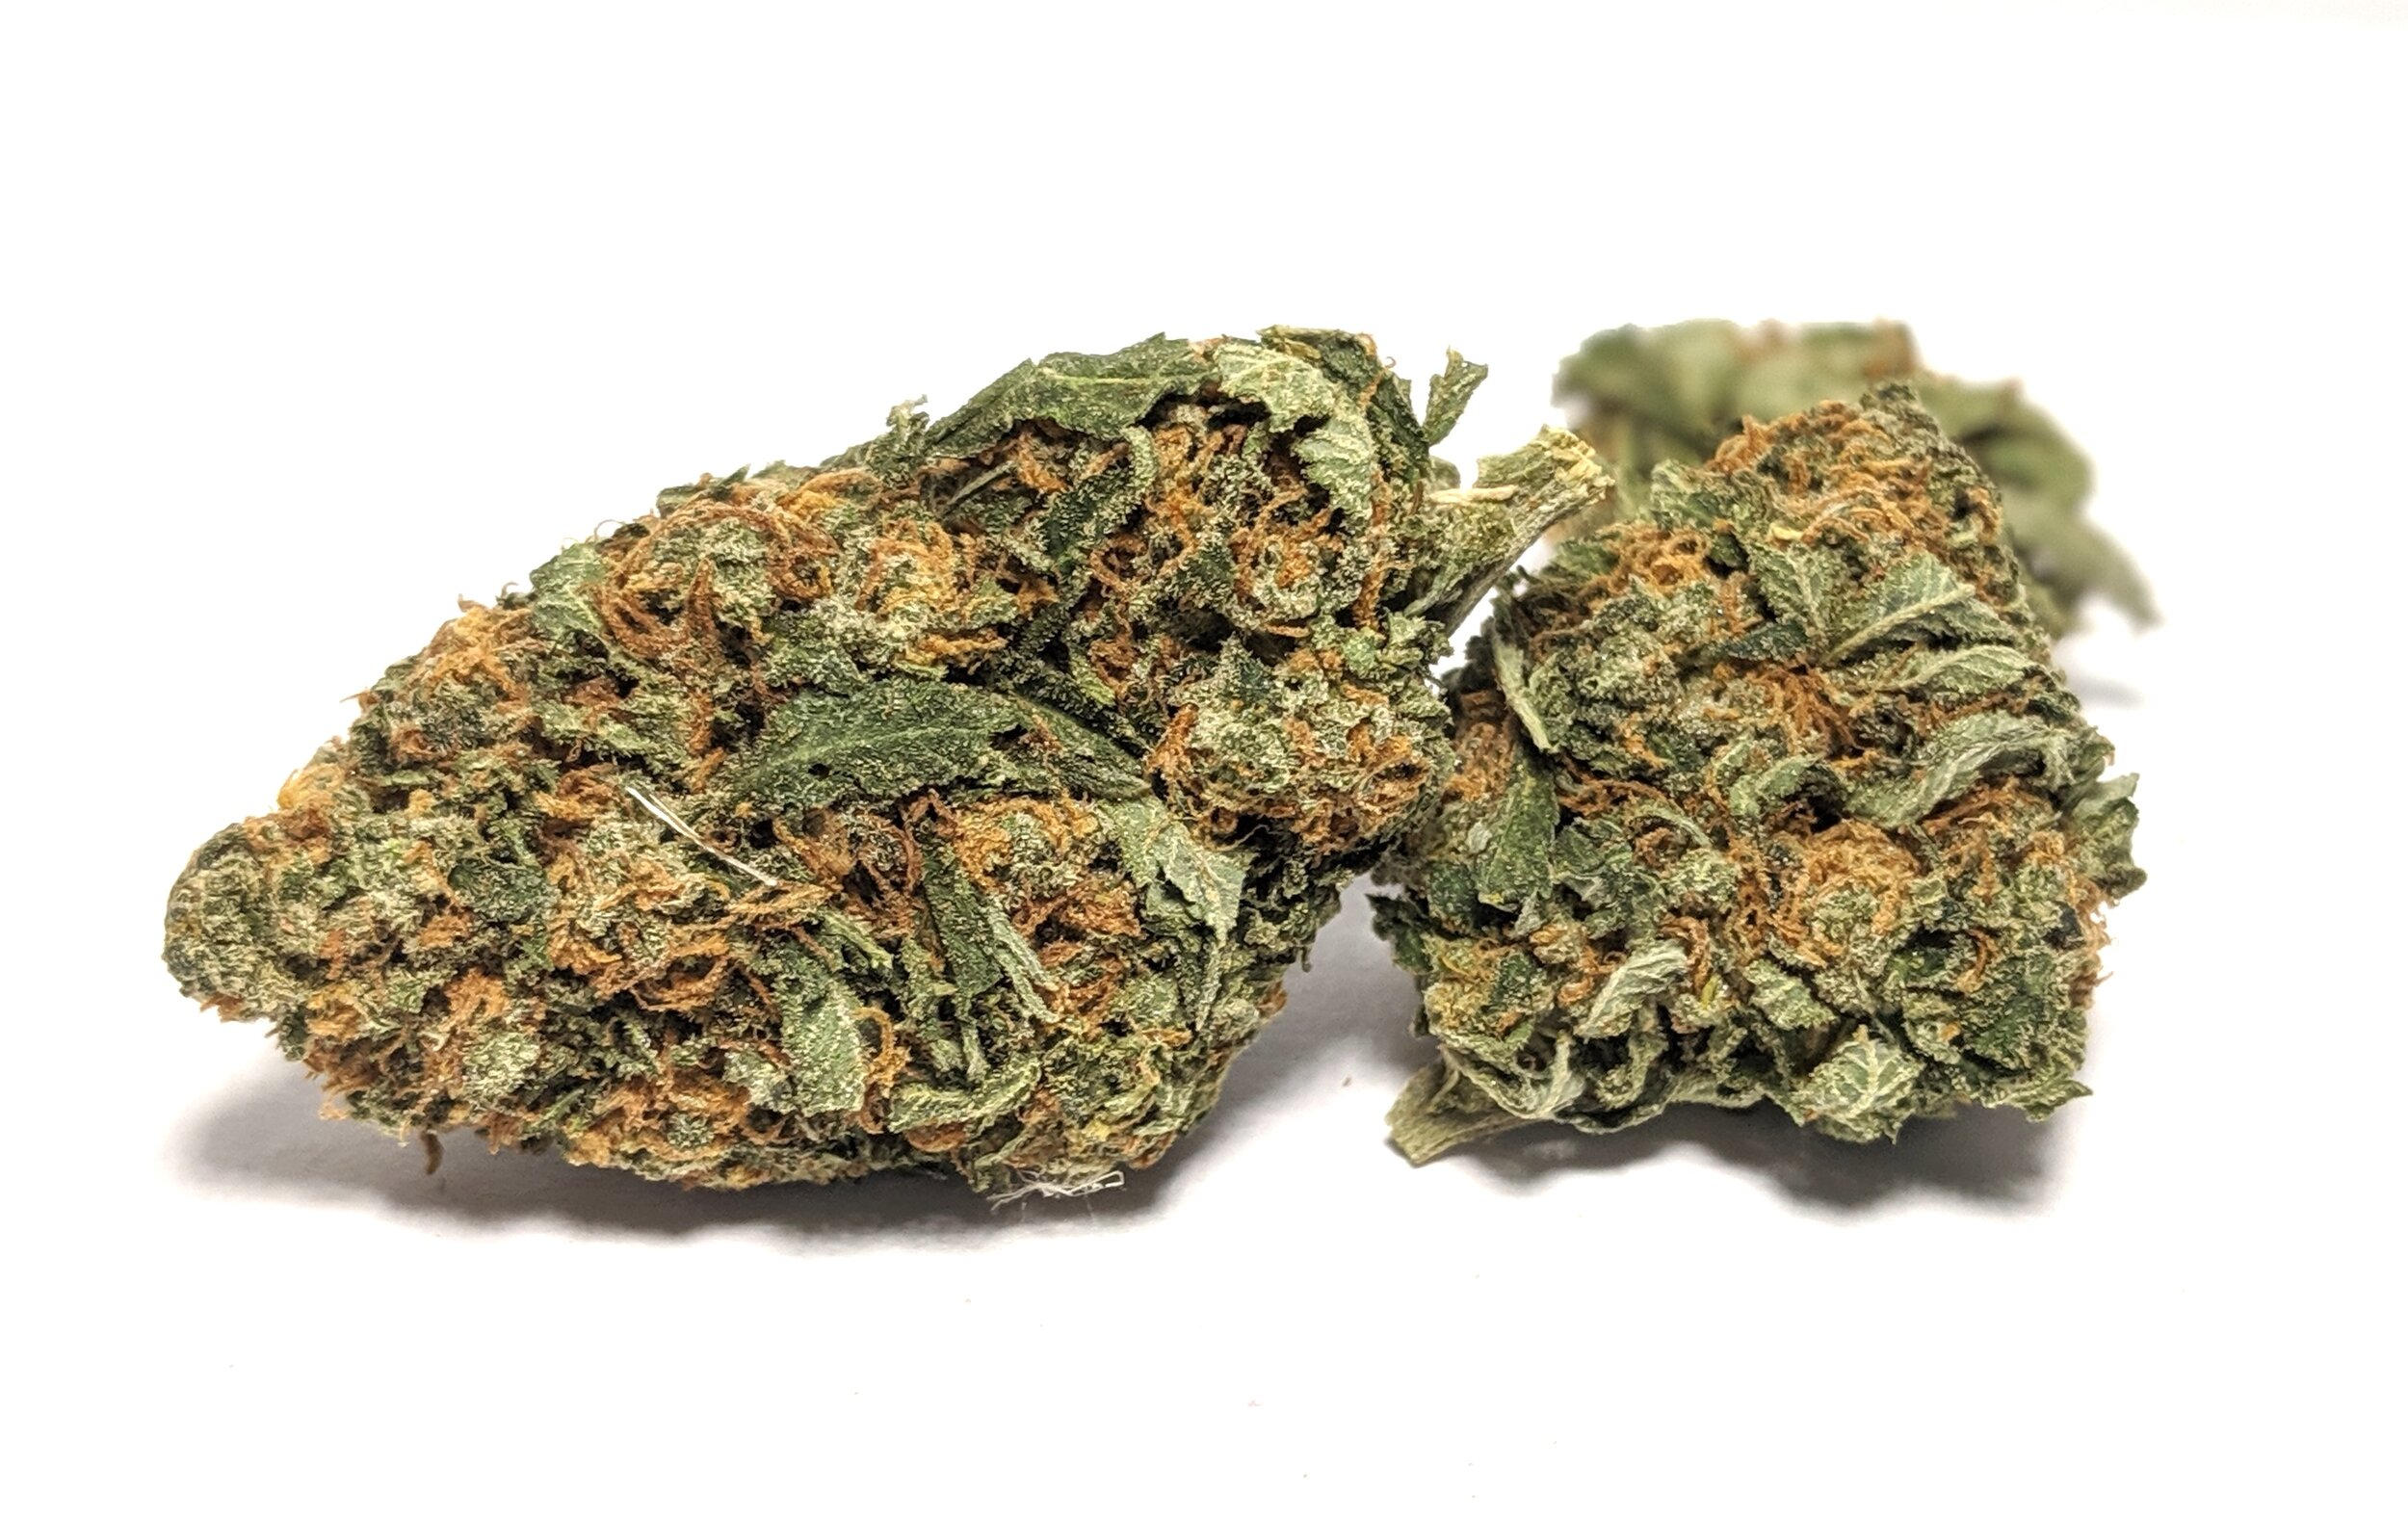 Lemon Wreck - Hybrid    1/4- $60 1/2-$100 OZ-$180   Lemon Wreck (also known as Lemon Trainwreck) is a sativa-dominant cross between Lemon Diesel and Trainwreck. This strain features a taste similar to sour lemon candy, and produces both a strong body and head stone. While it may have stimulating and cerebral effects at first, this is truly a nighttime strain for some as it produces strong sleepy effects over time. Lemon Wreck is helpful to those suffering from insomnia or are in need of relaxation.